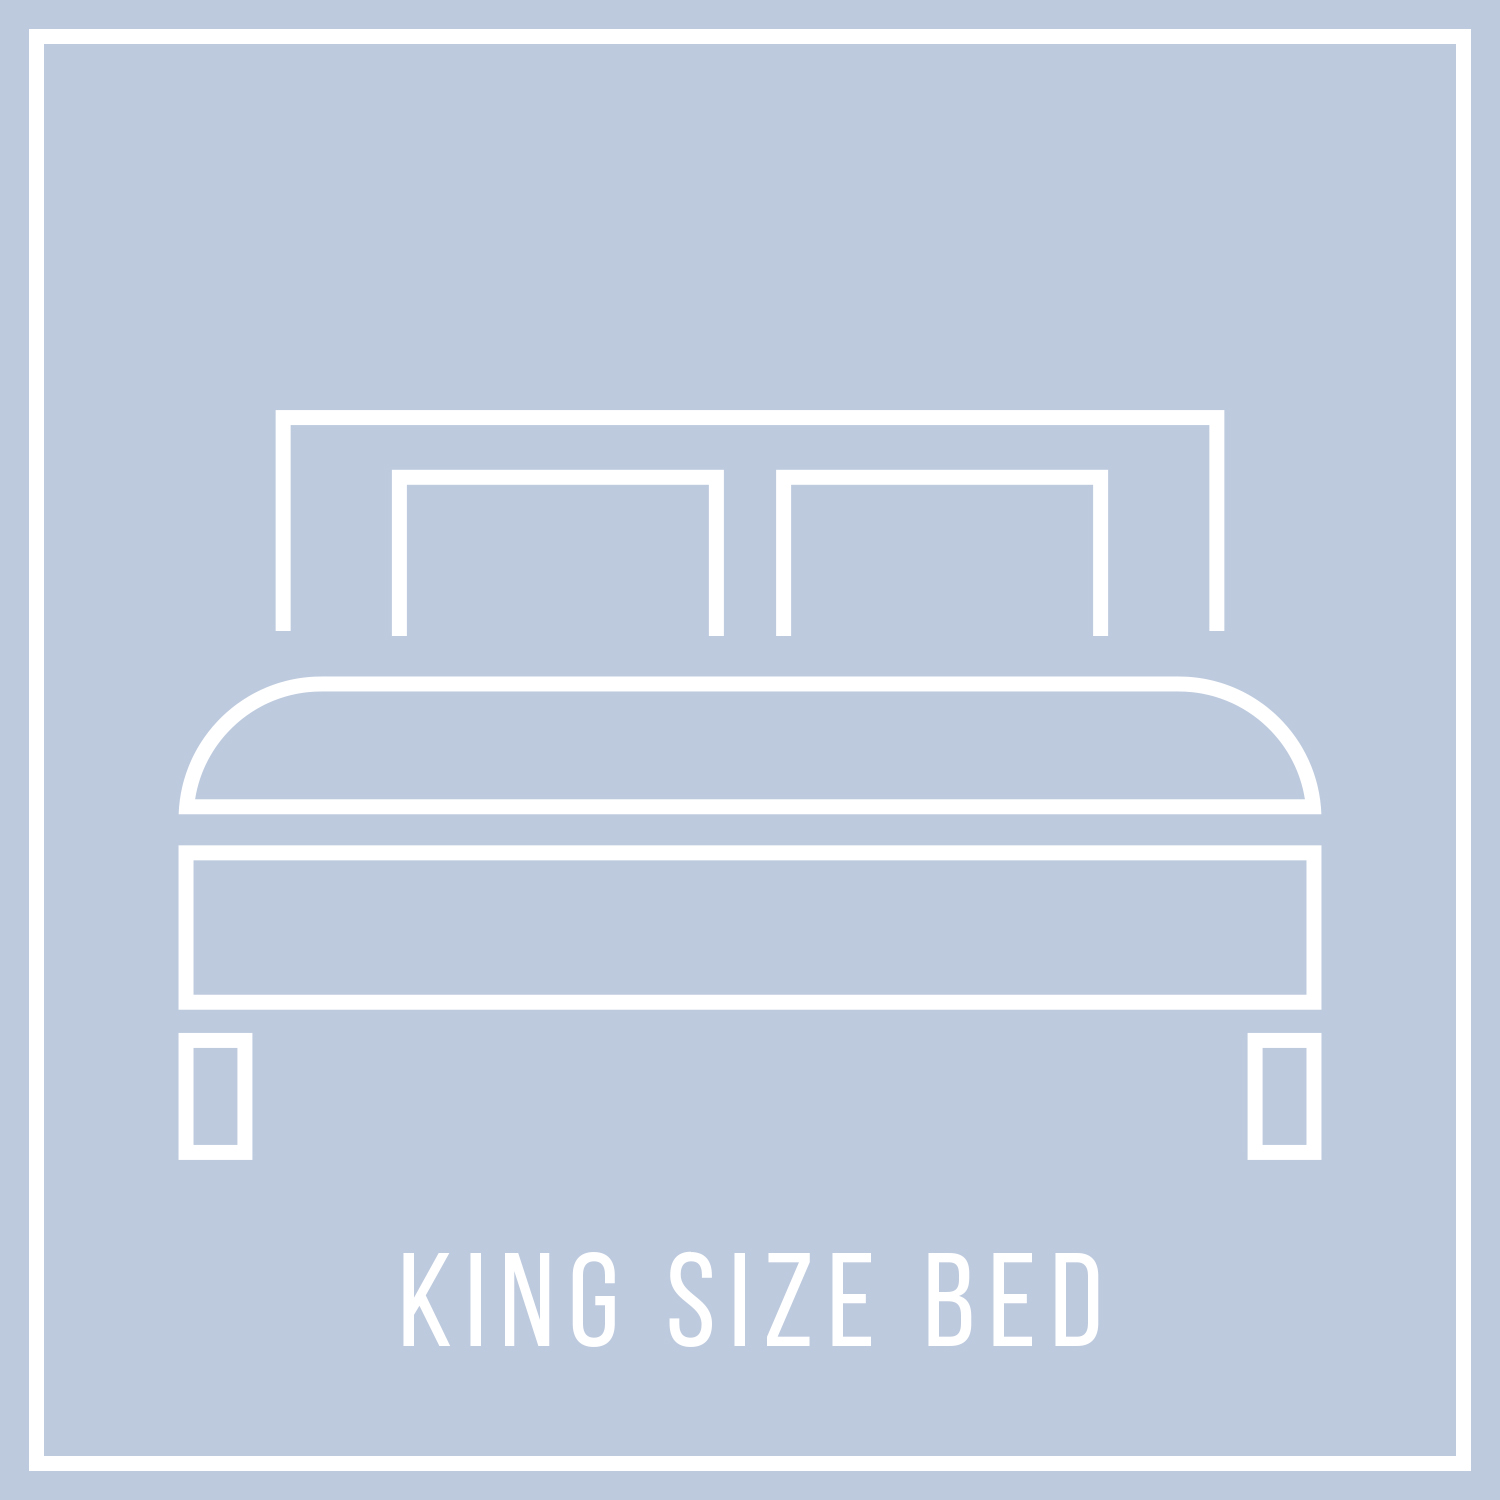 aya-kapadokya-room-features-equestrian-suite-square-king-size-bed